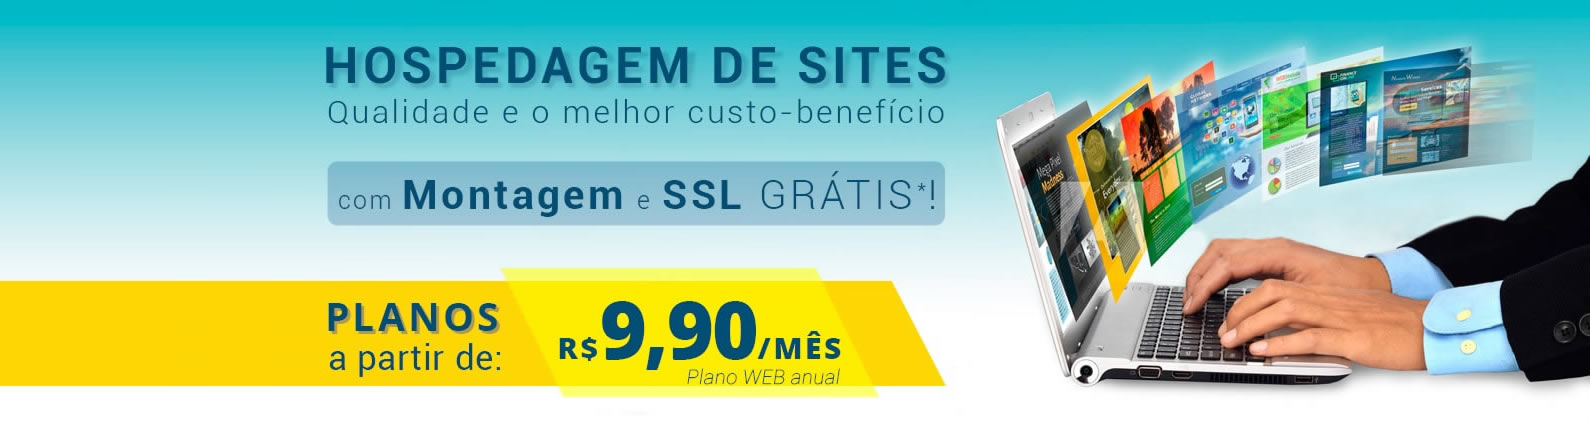 Hospedagem de Sites com SSL